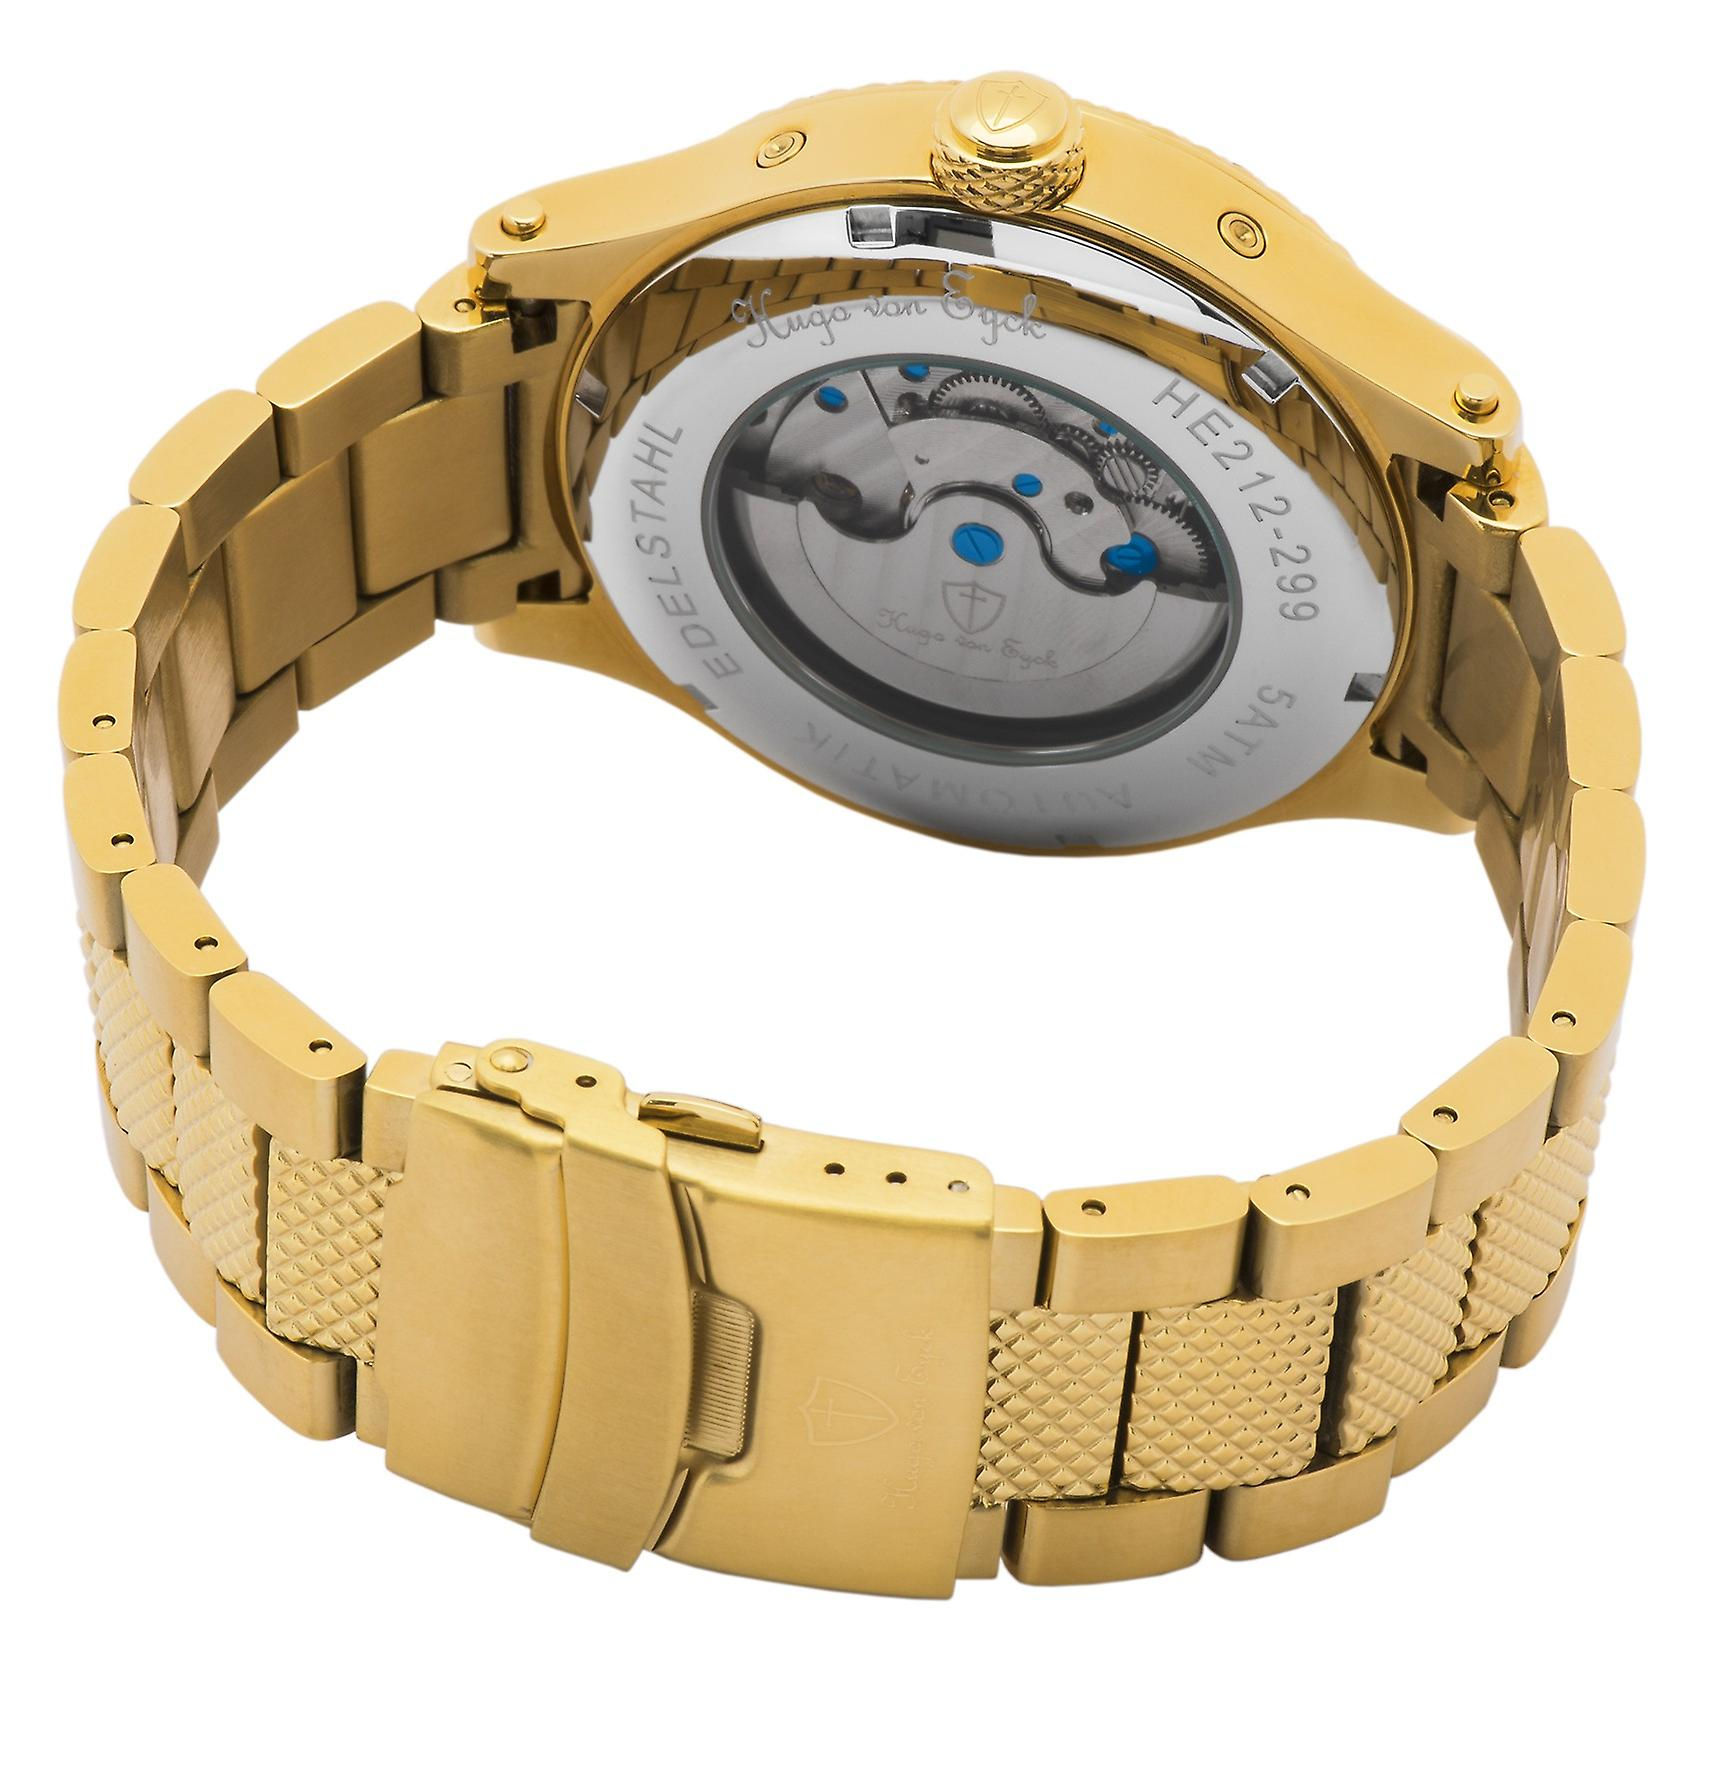 Hugo von Eyck gents automatic watch Antila, HE212-299